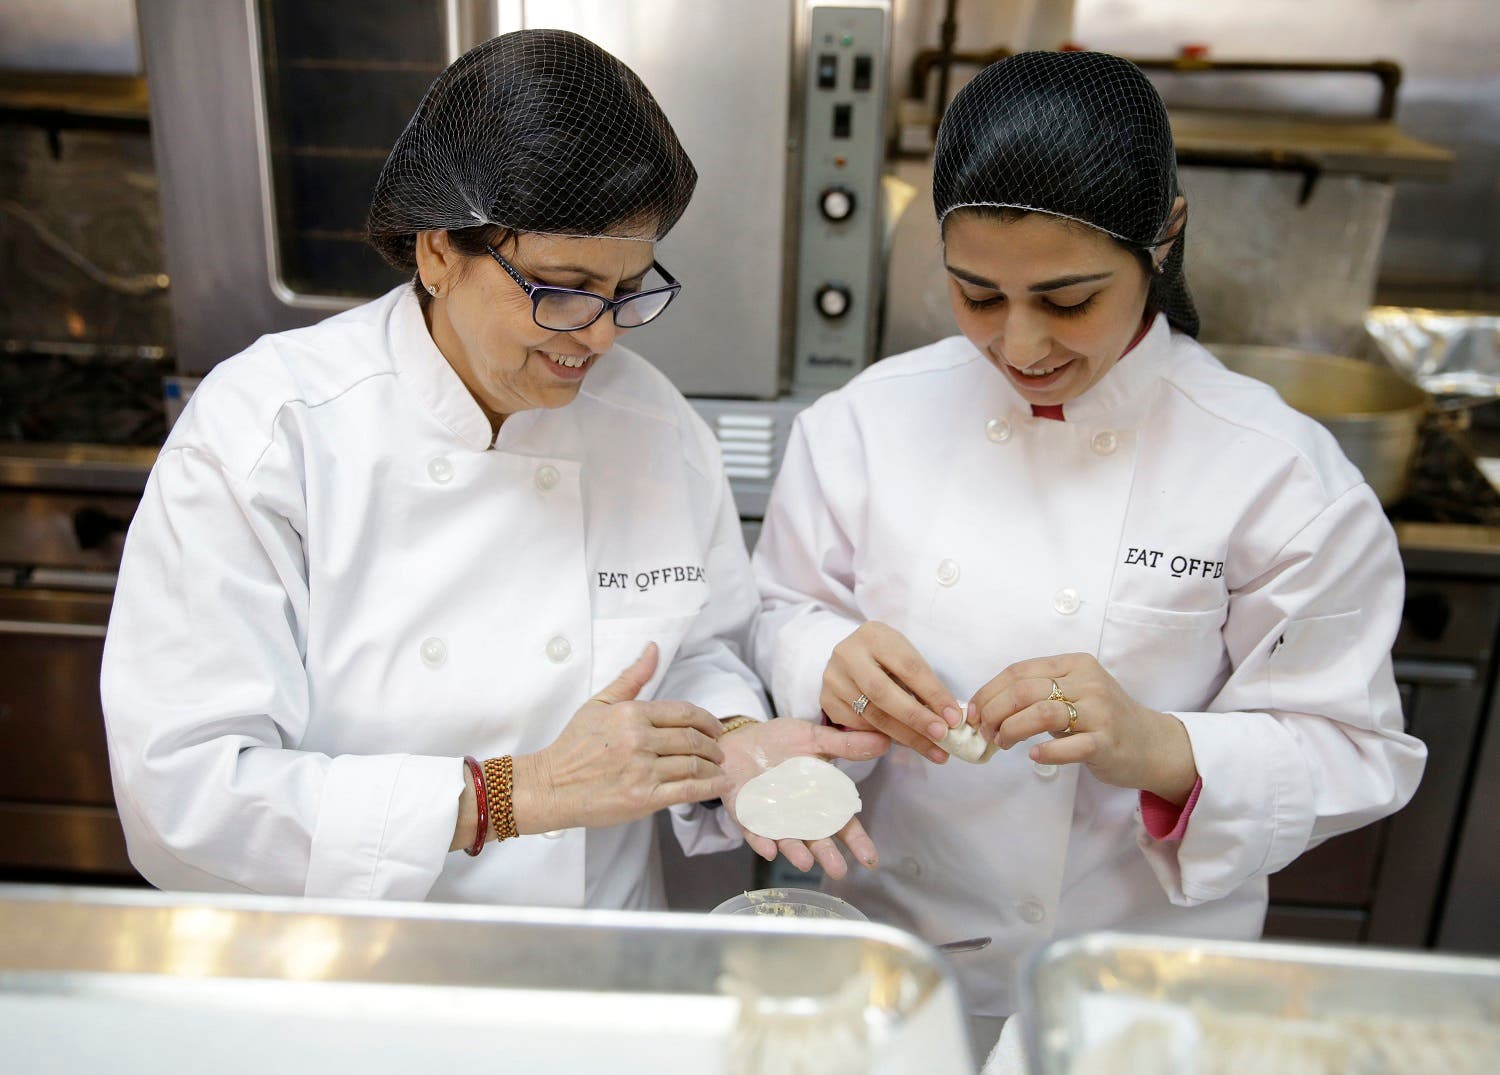 Rachana Rimel, left, and Dhuha Jasim make nepalese dumplings in New York, Tuesday, March 29, 2016. A food delivery service is offering New Yorkers the chance to try some food cooked by some unusual chefs. All seven employees at Eat Offbeat are either refugees or asylum-seekers who fled their home countries. They're cooking foods from those places, including Iraq and Nepal. (AP)